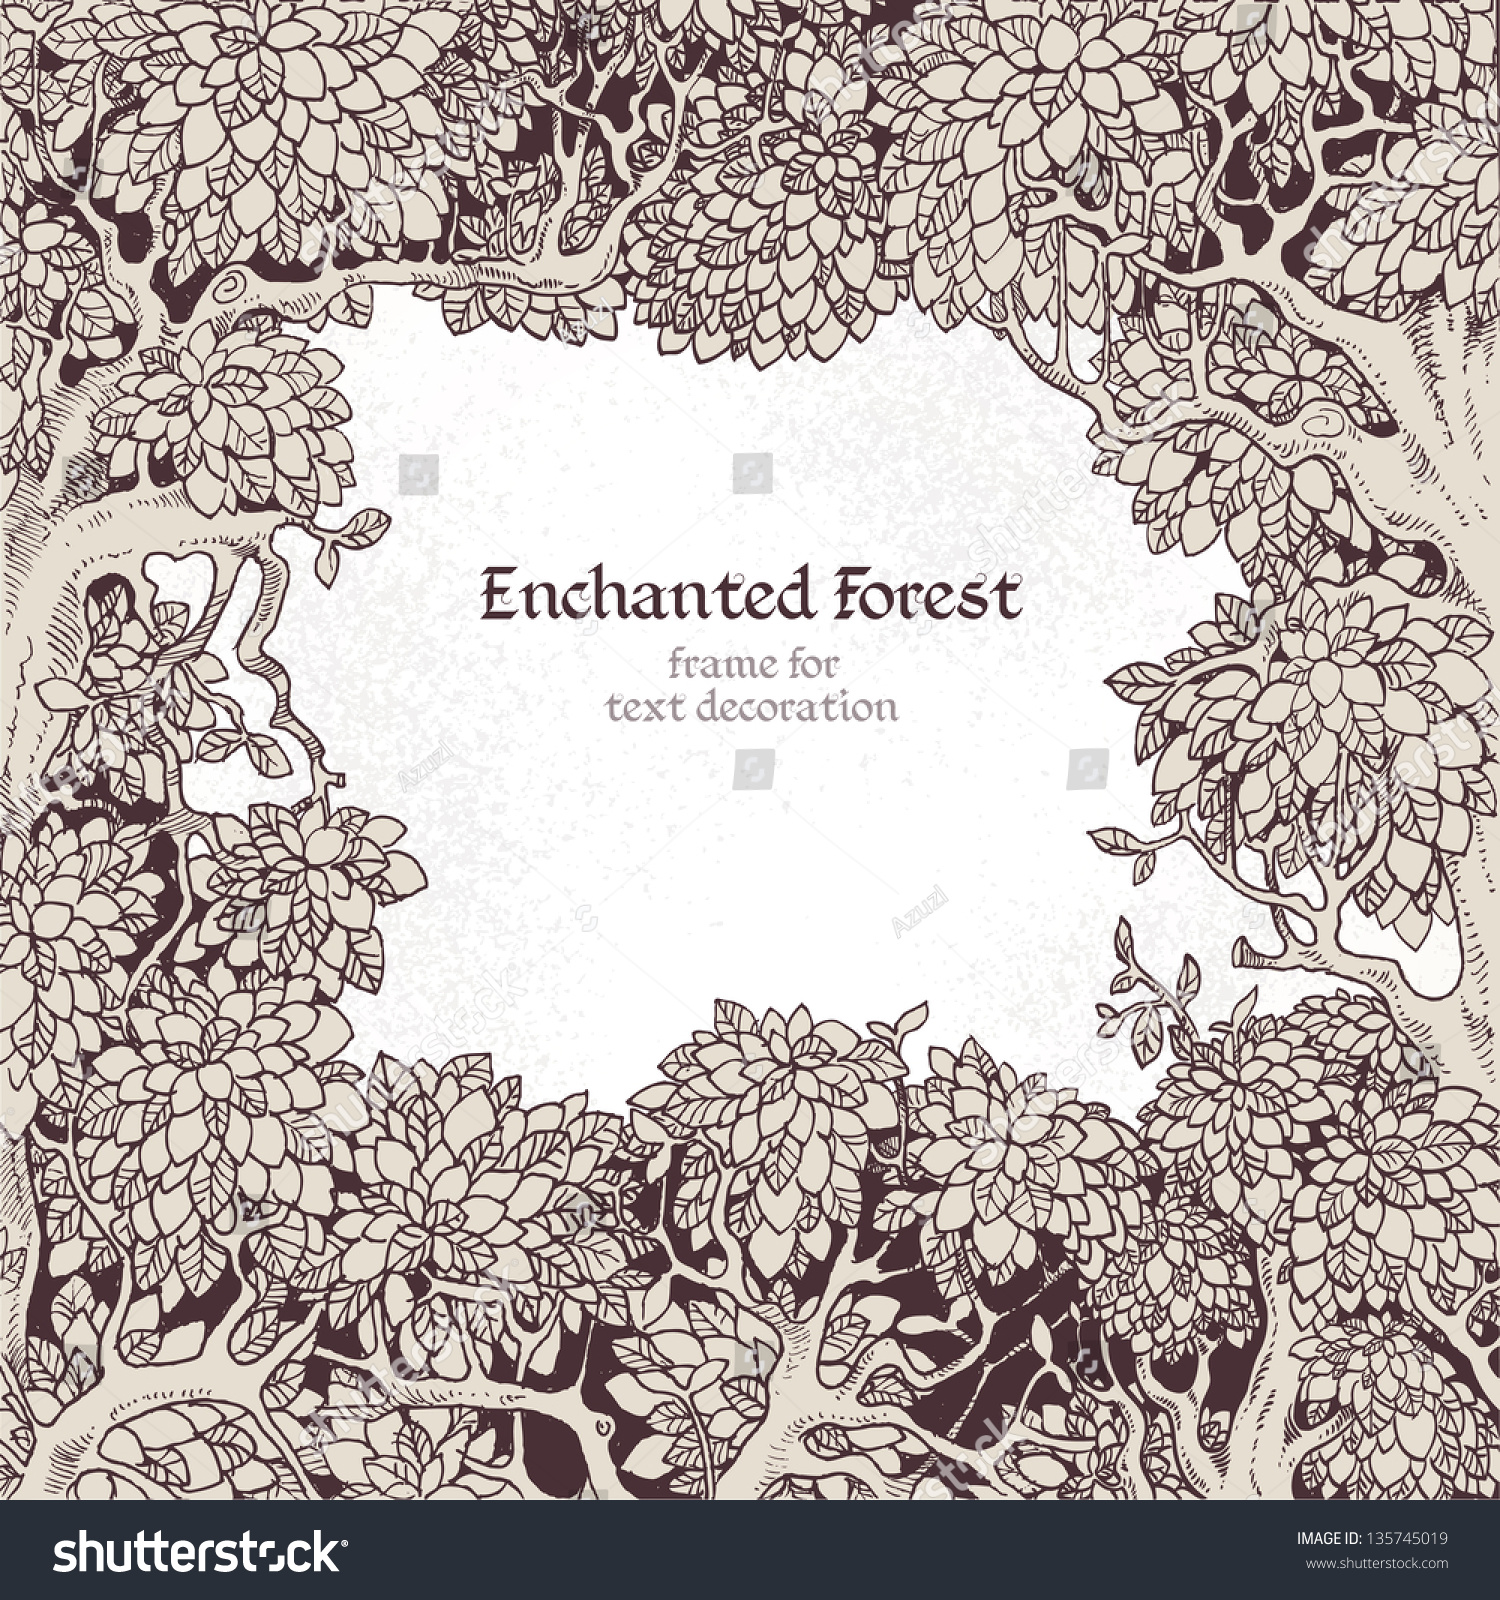 Frame text decoration enchanted forest stock vector for A text decoration